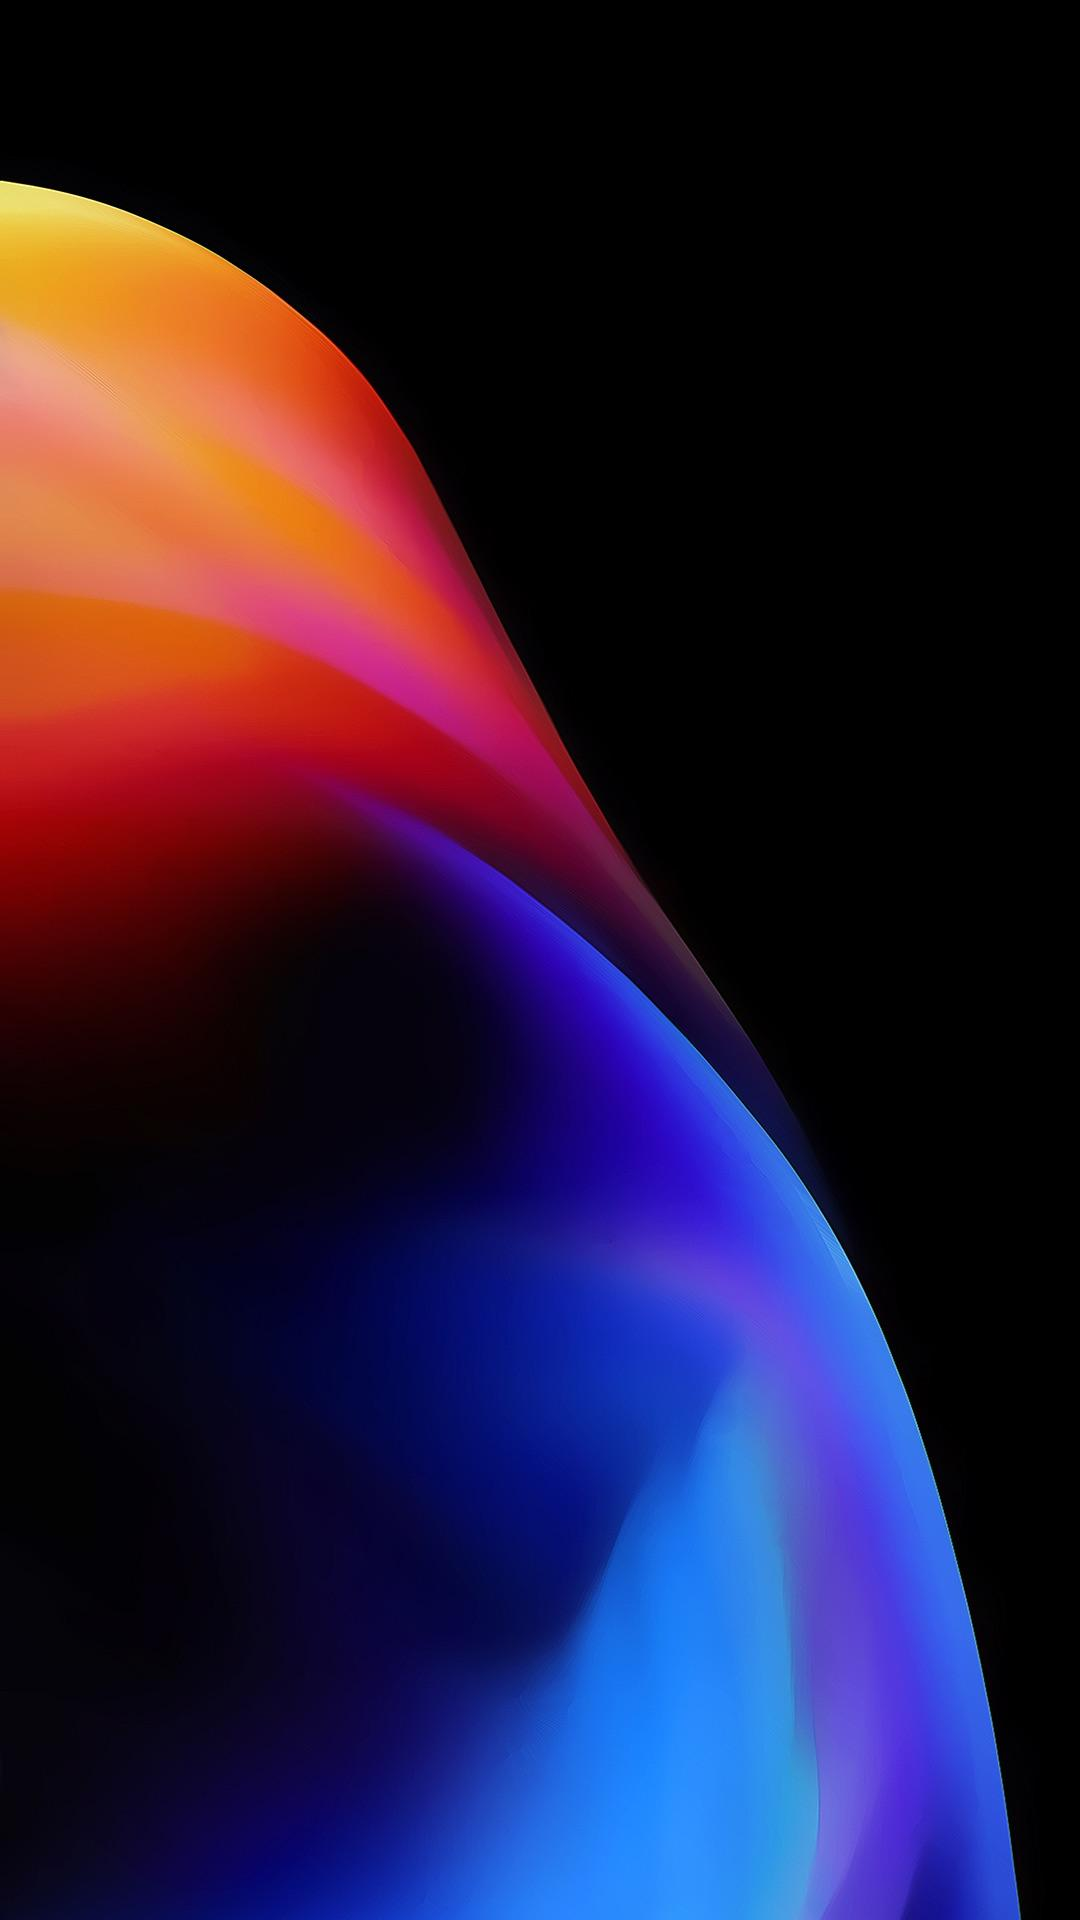 Iphone 8 Plus Wallpapers Top Free Iphone 8 Plus